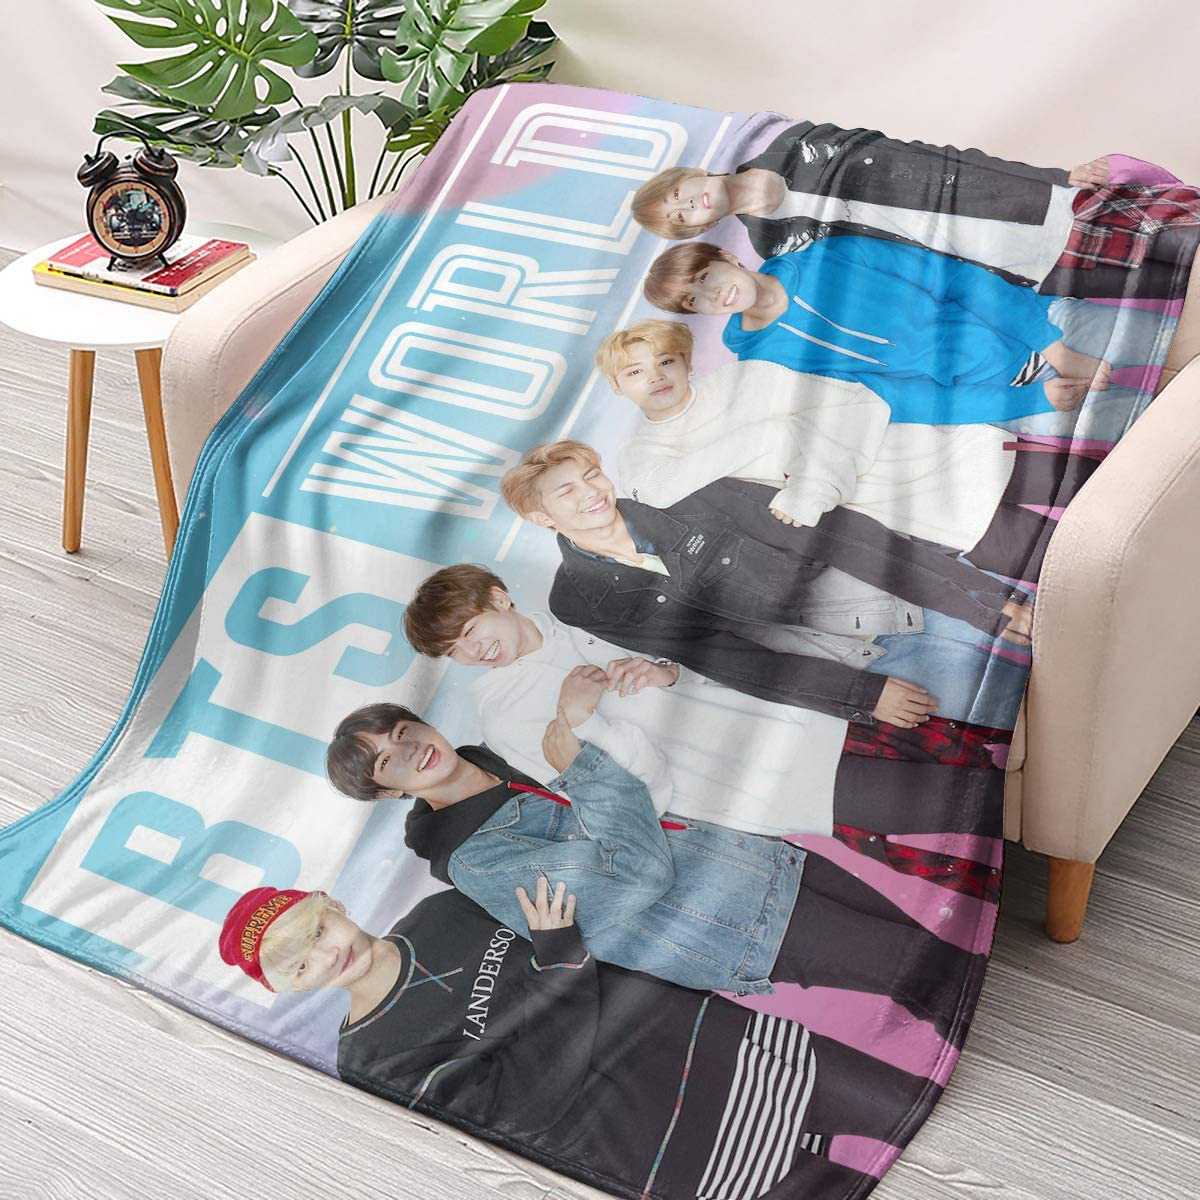 NBBZ Kpop BTS Band Flannel Throws Blankets Couch Sofa Fuzzy Blanket for Traveling Camping Home (59